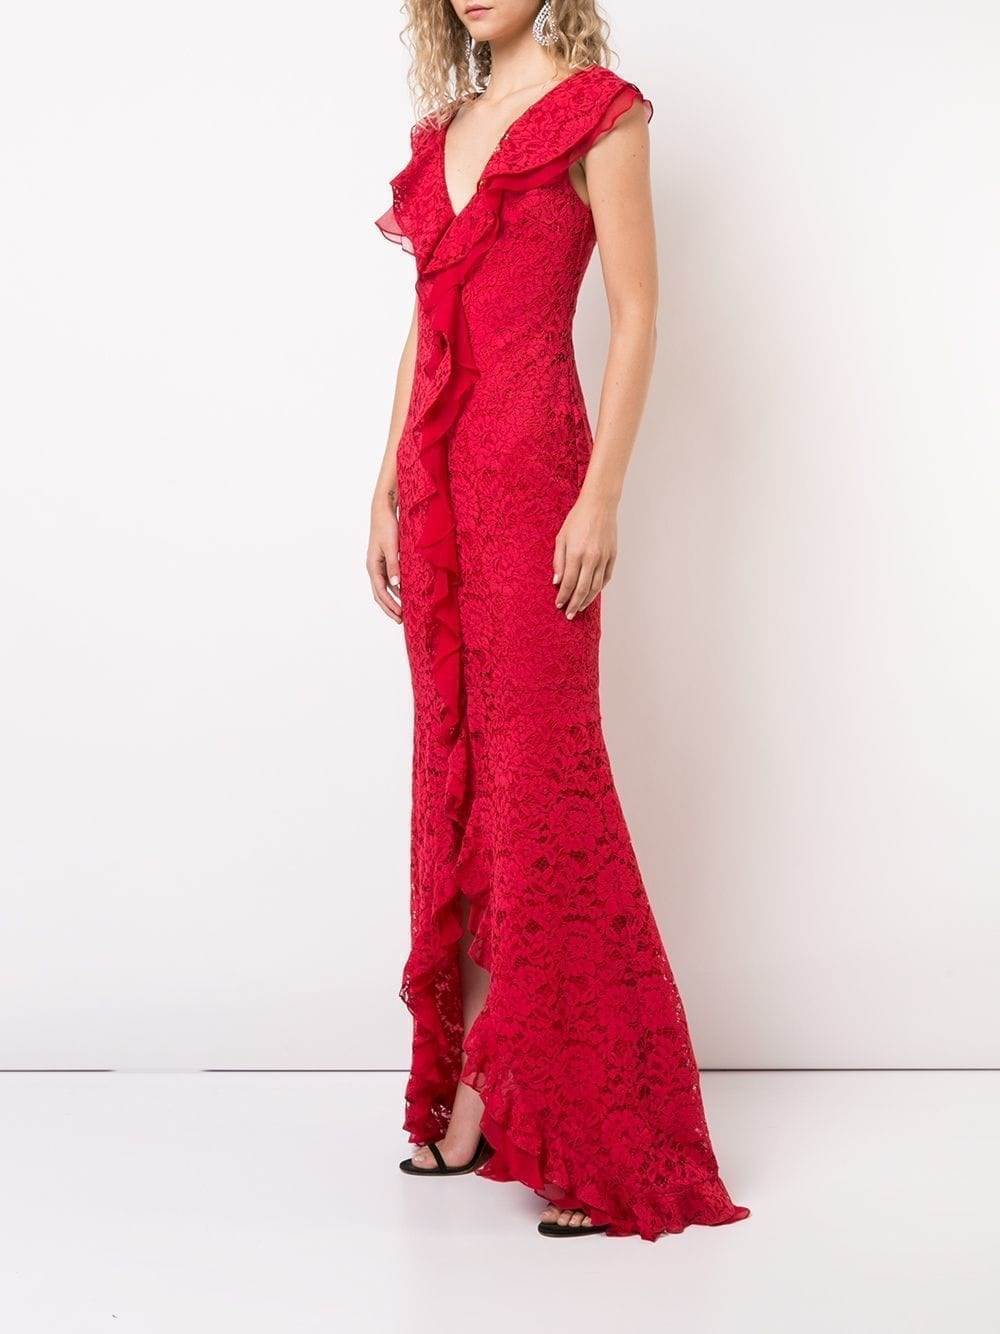 ZAC ZAC POSEN Aiden Red Gown - We Select Dresses